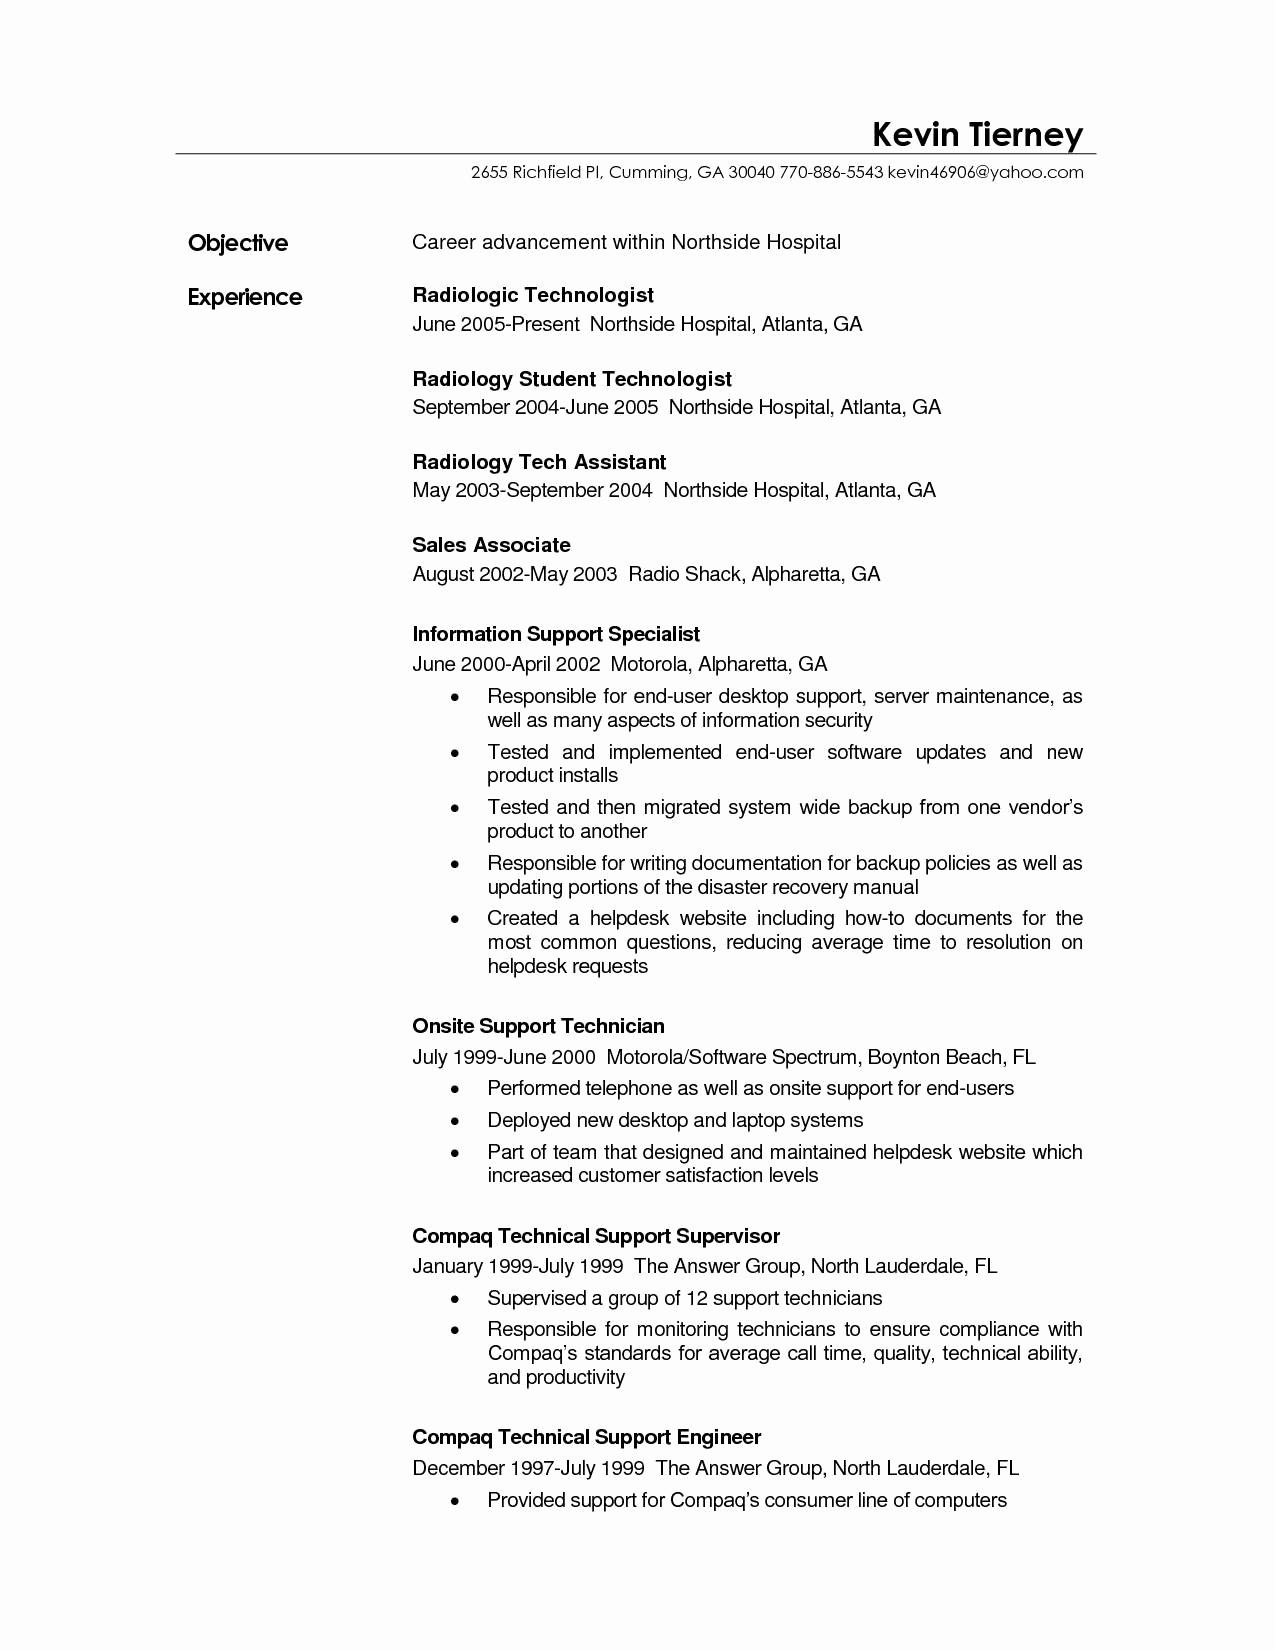 Sample Technical Resume - 37 Fresh Surgical Tech Resume Sample Resume Templates Ideas 2018